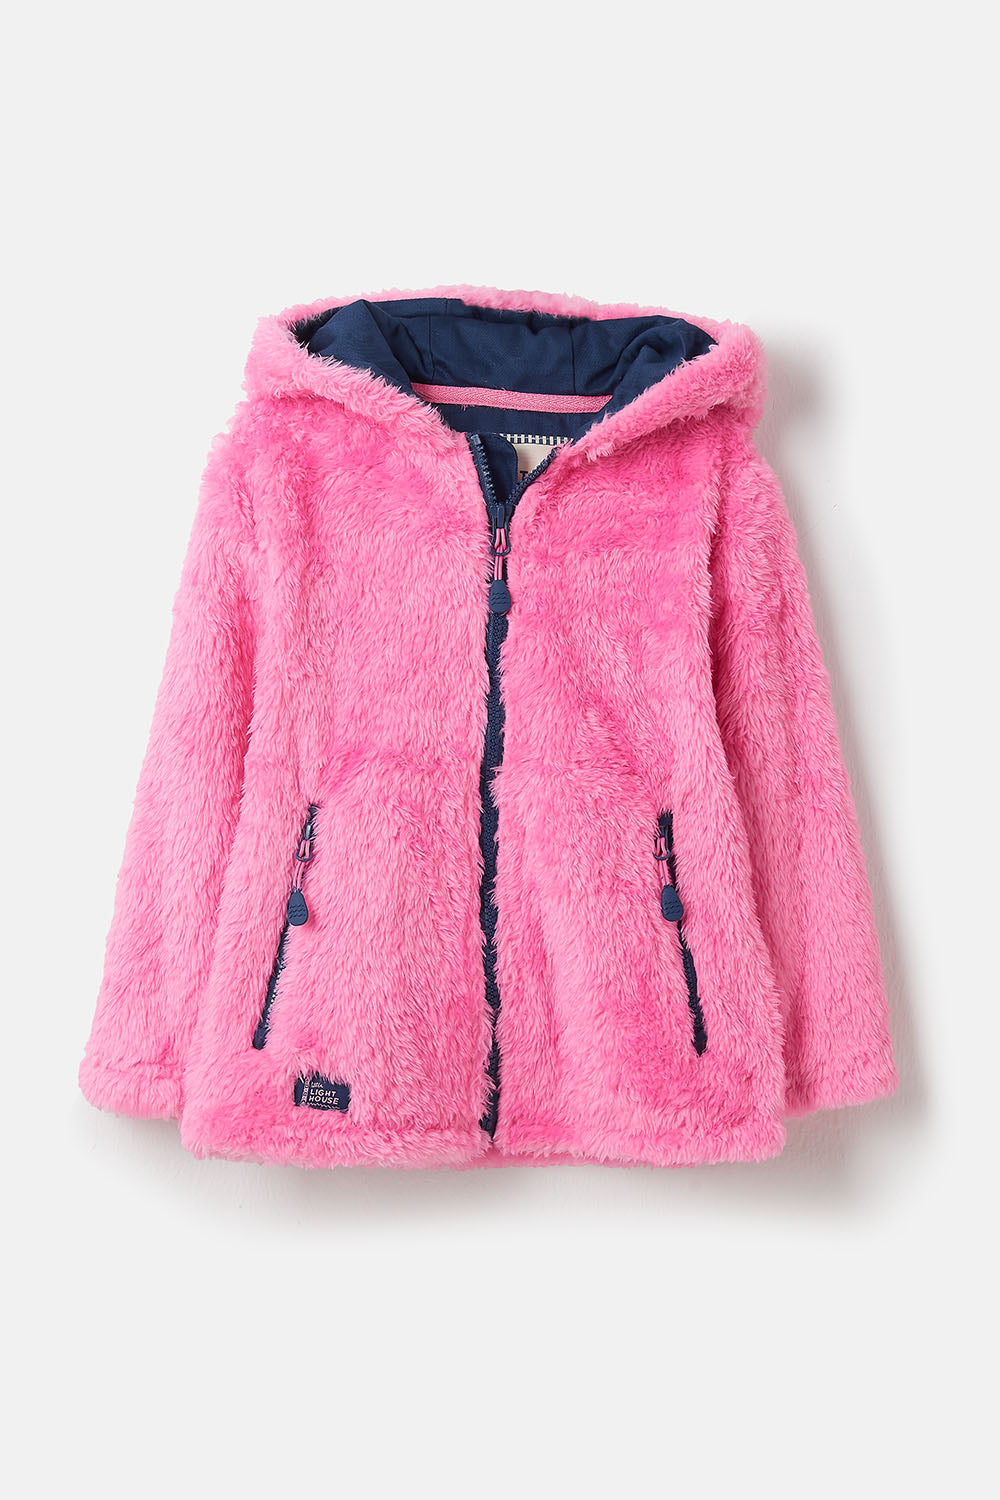 Gracie Fleece - Pink, Girl's Full Zip Fleece | Lighthouse